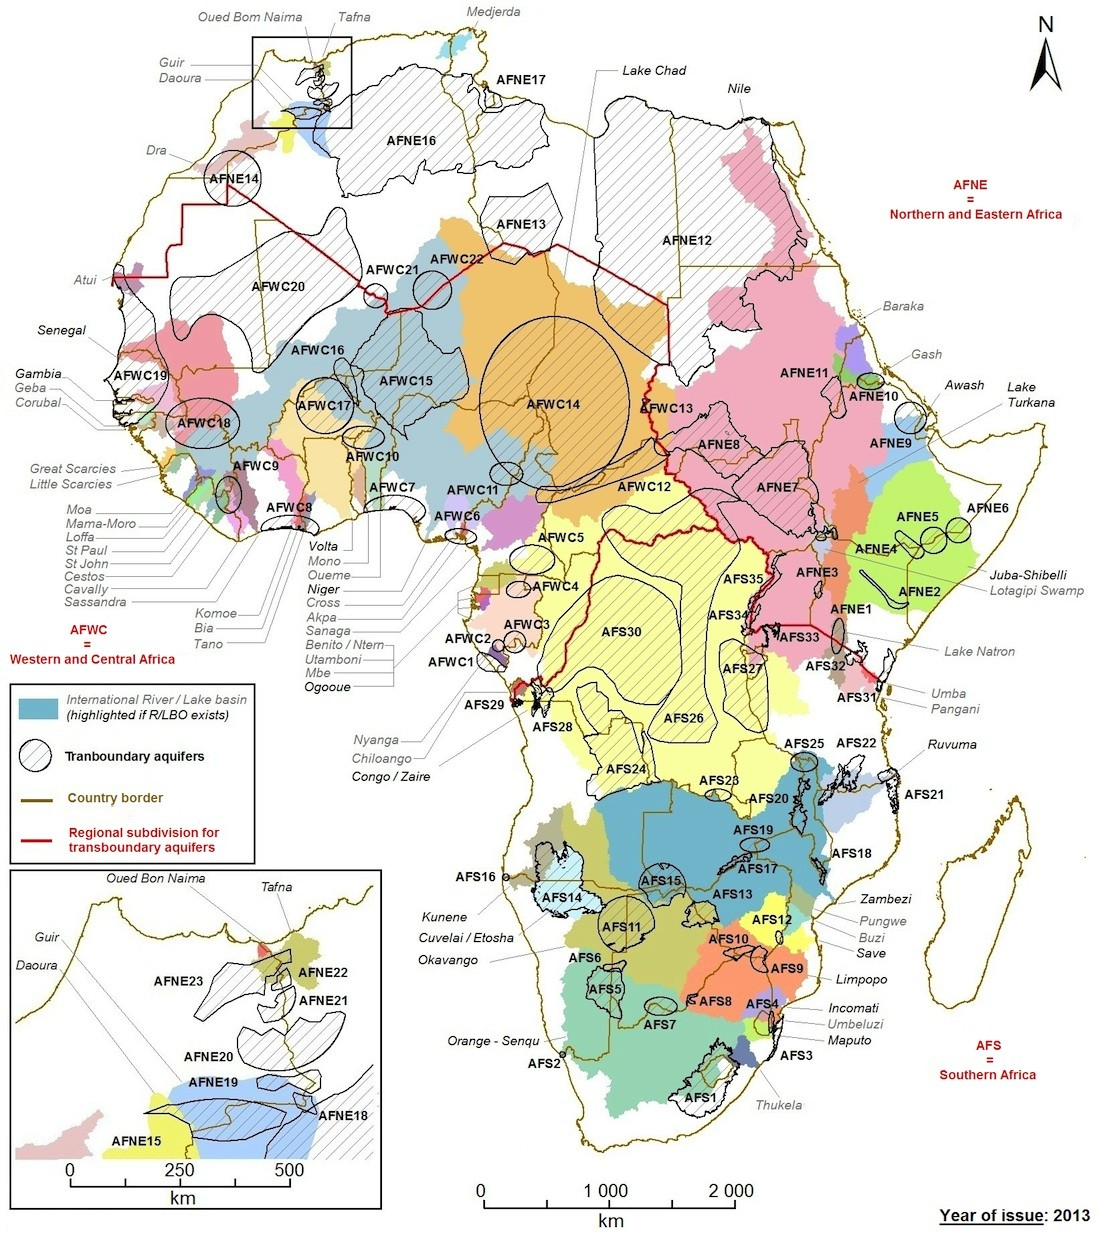 Transboundary Aquifer Map For Africa Water Land And Ecosystems